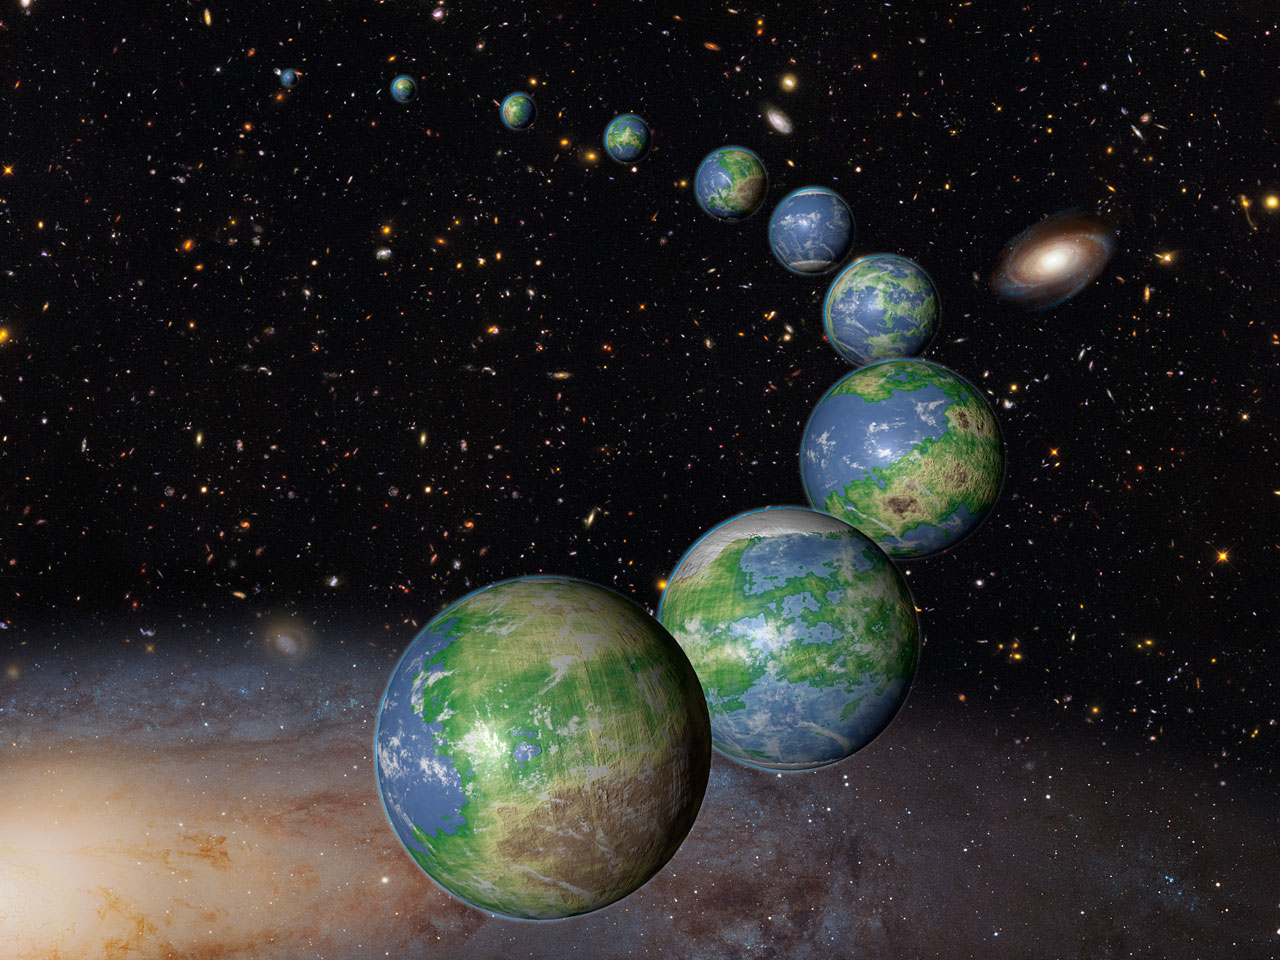 Artist's Concept of Earth-Like Planets in the Future Universe